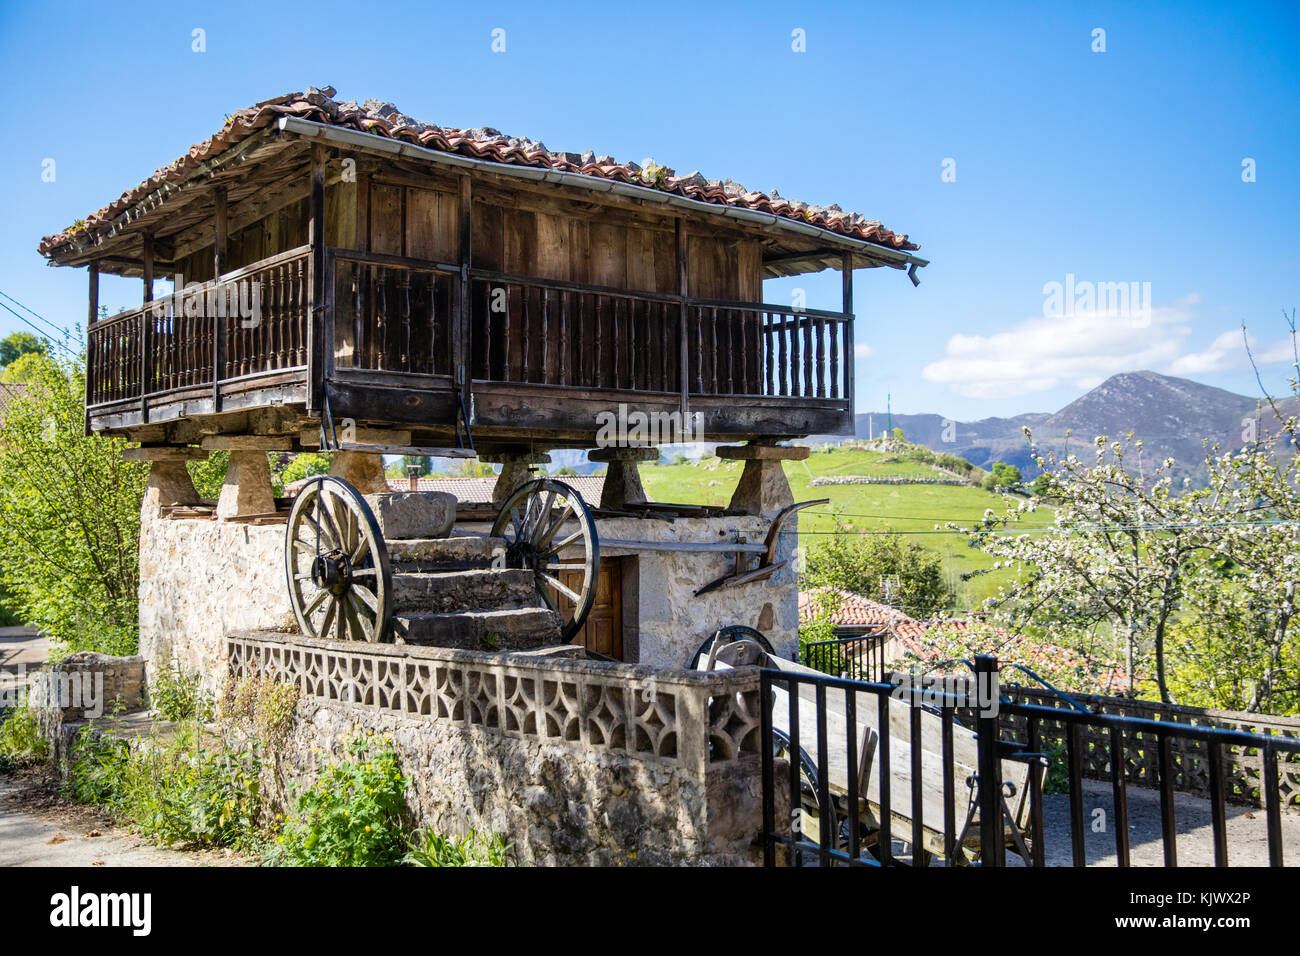 Asturian raised granary or Oriel in the village of Bobia de Arriba in the Picos de Europa mountains of northern - Stock Image